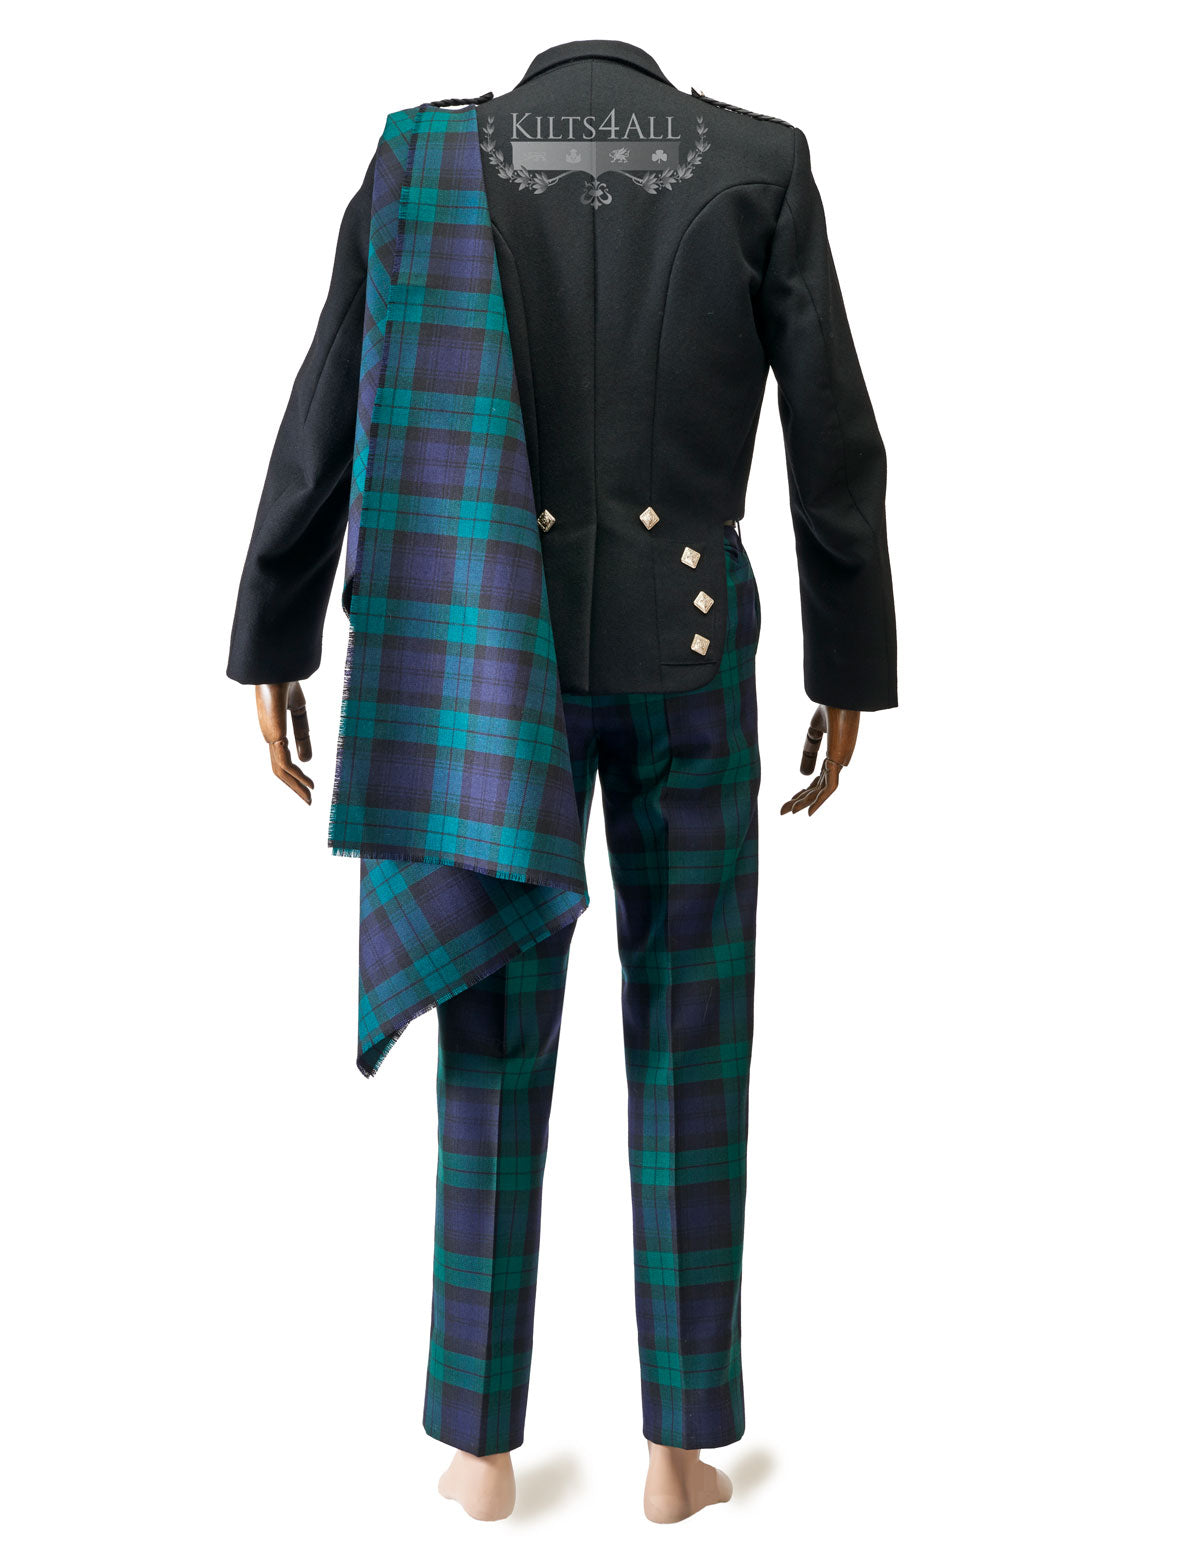 Mens Scottish Tartan Trews Outfit to Hire - Lightweight Charcoal Tweed Argyll Jacket & Waistcoat